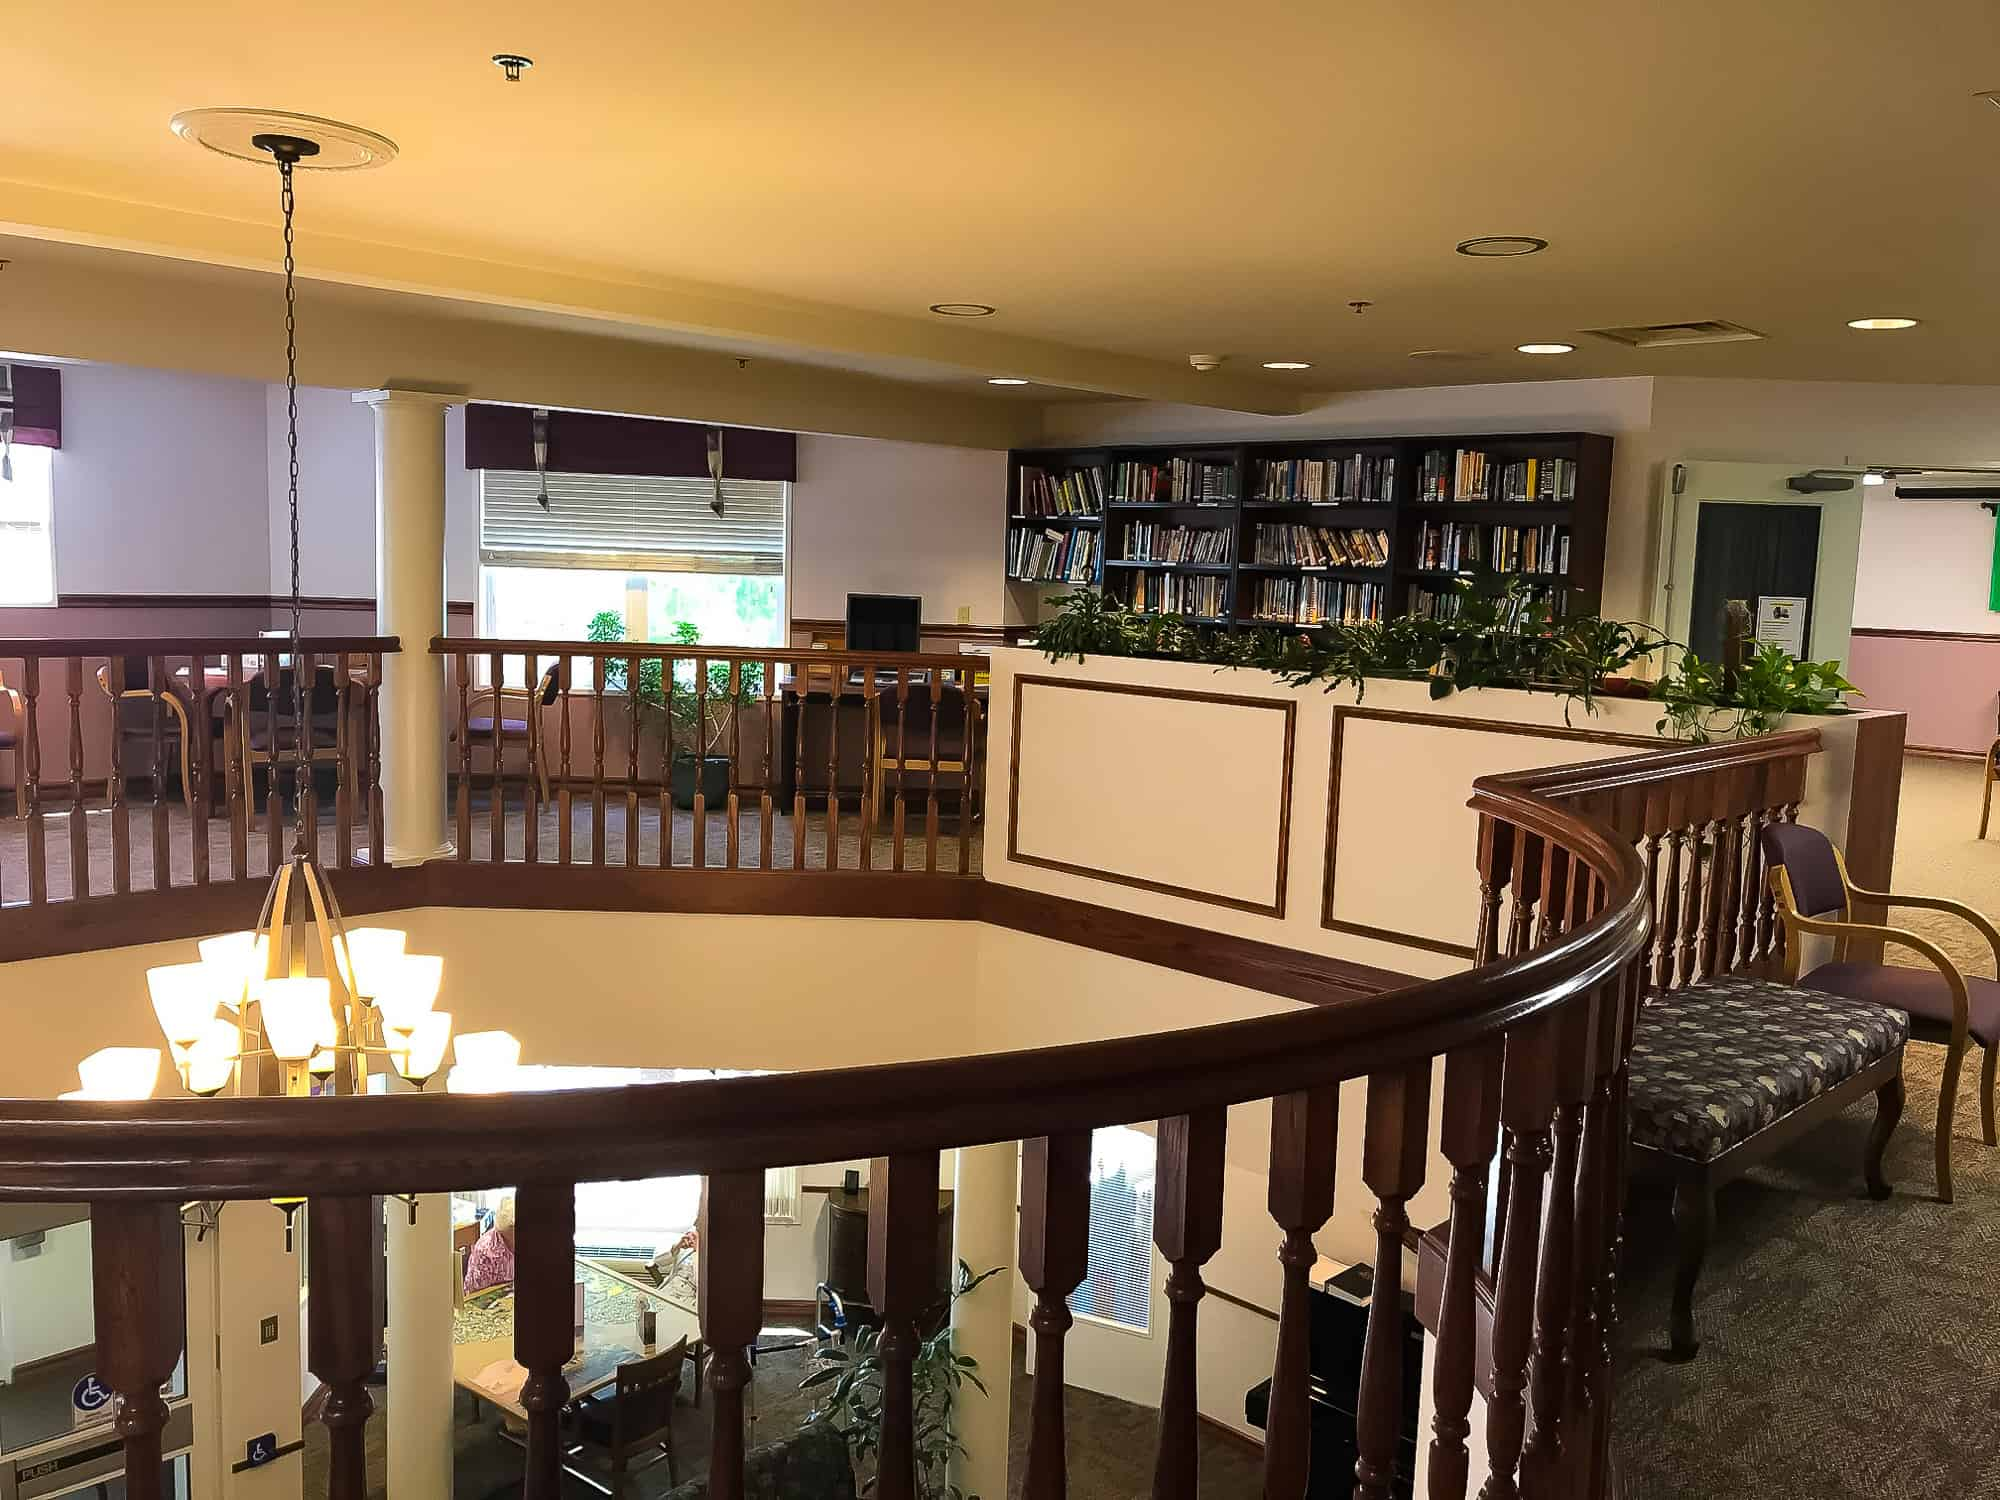 Upstairs with Book Shelves and Sitting Arrangement for Seniors at Mennonite Village